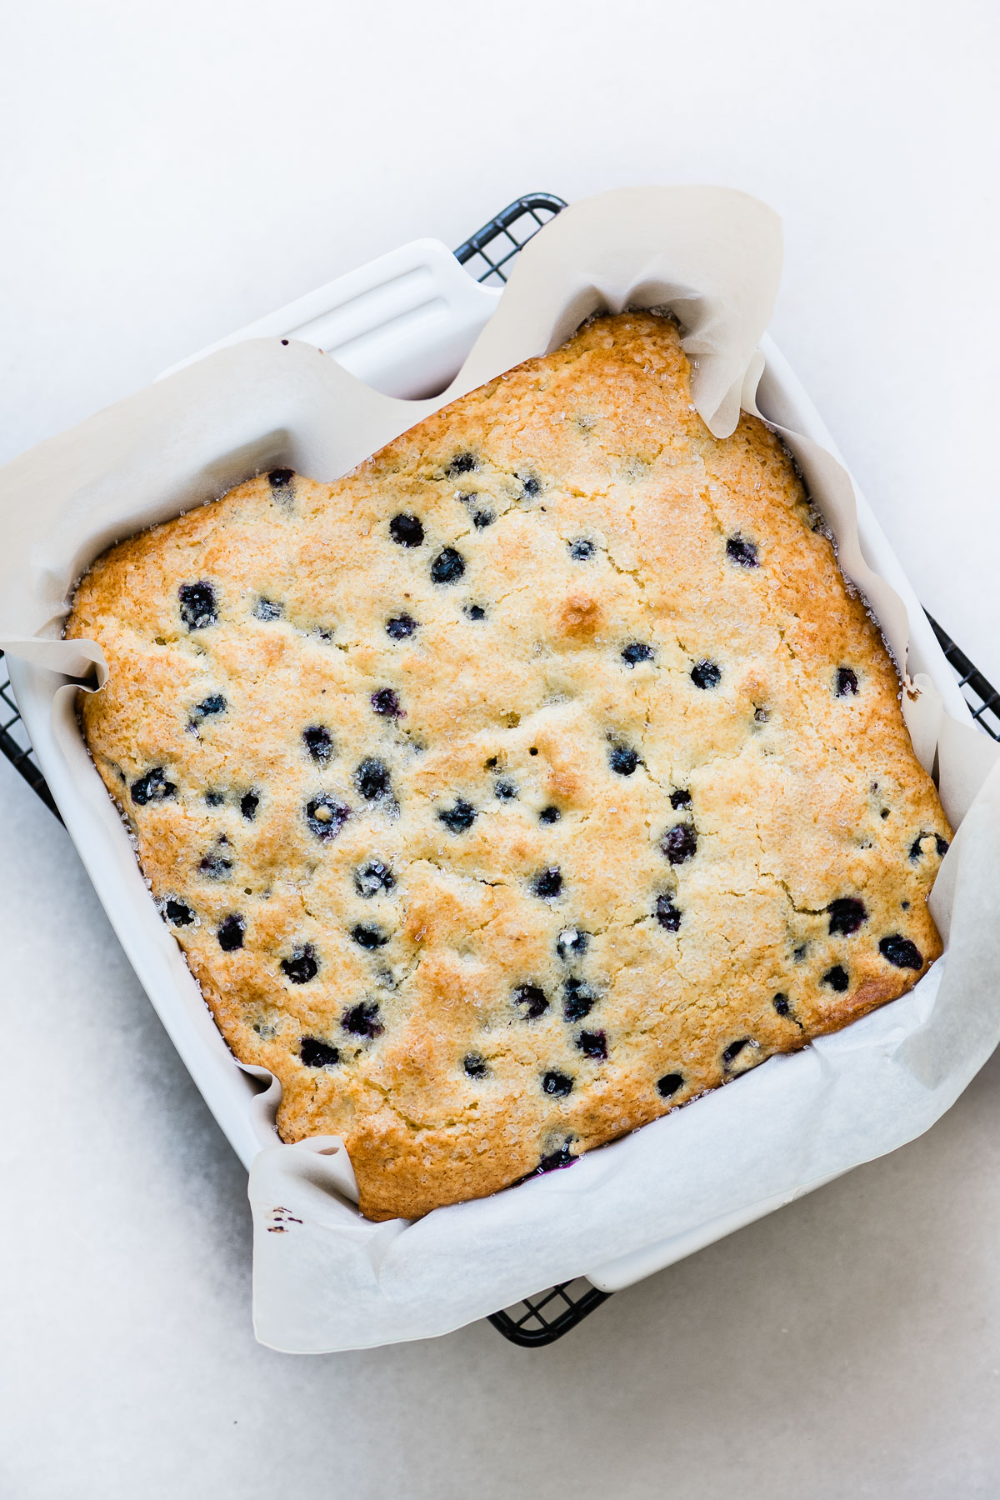 My Blueberry Lemon Breakfast Cake is a light and fluffy